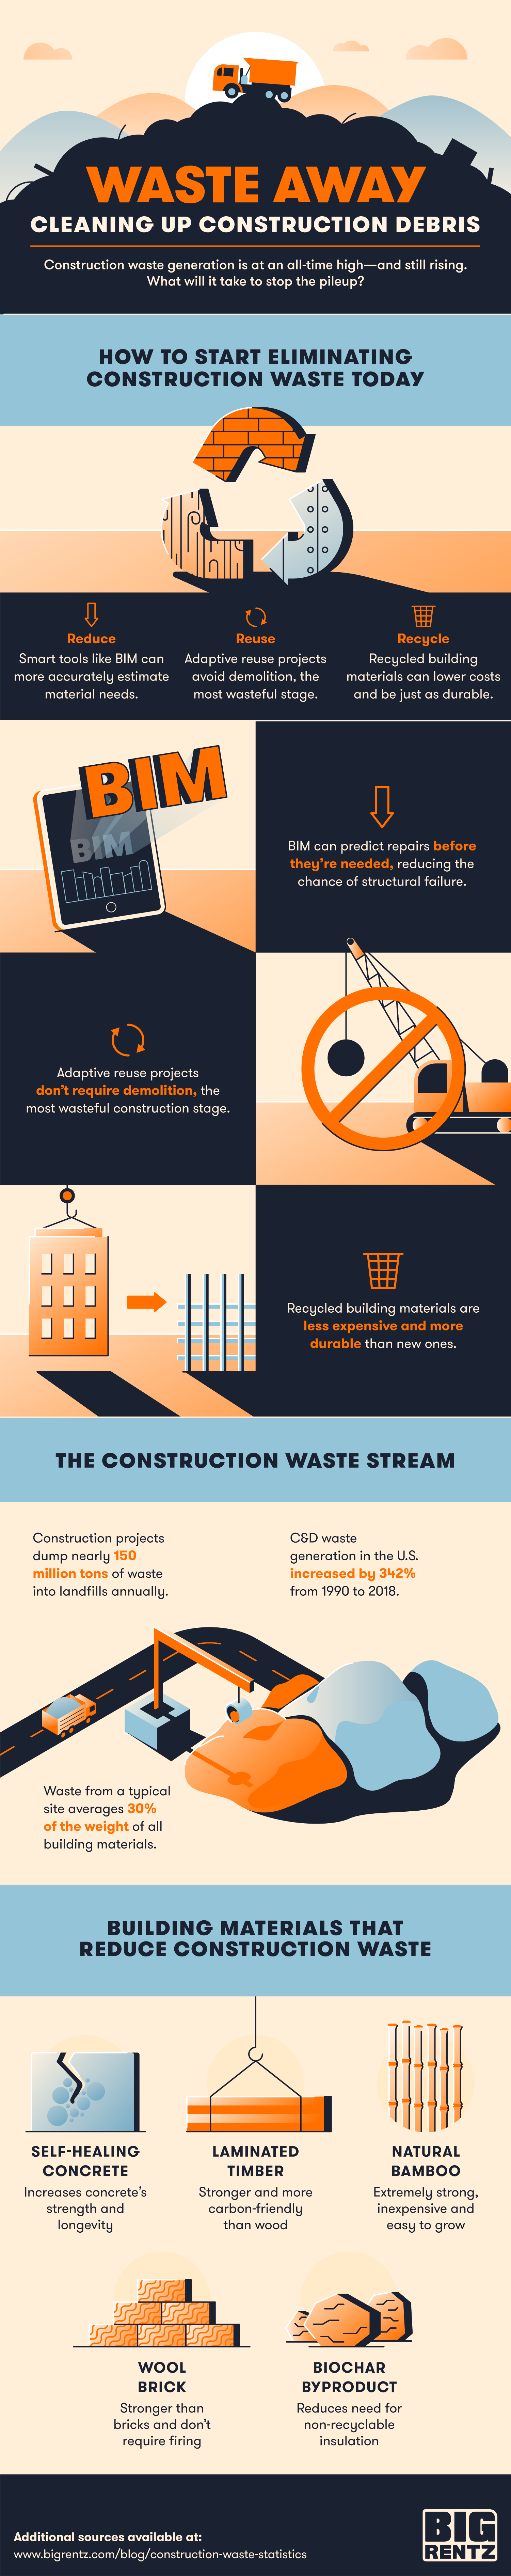 Infographic with stats about construction waste